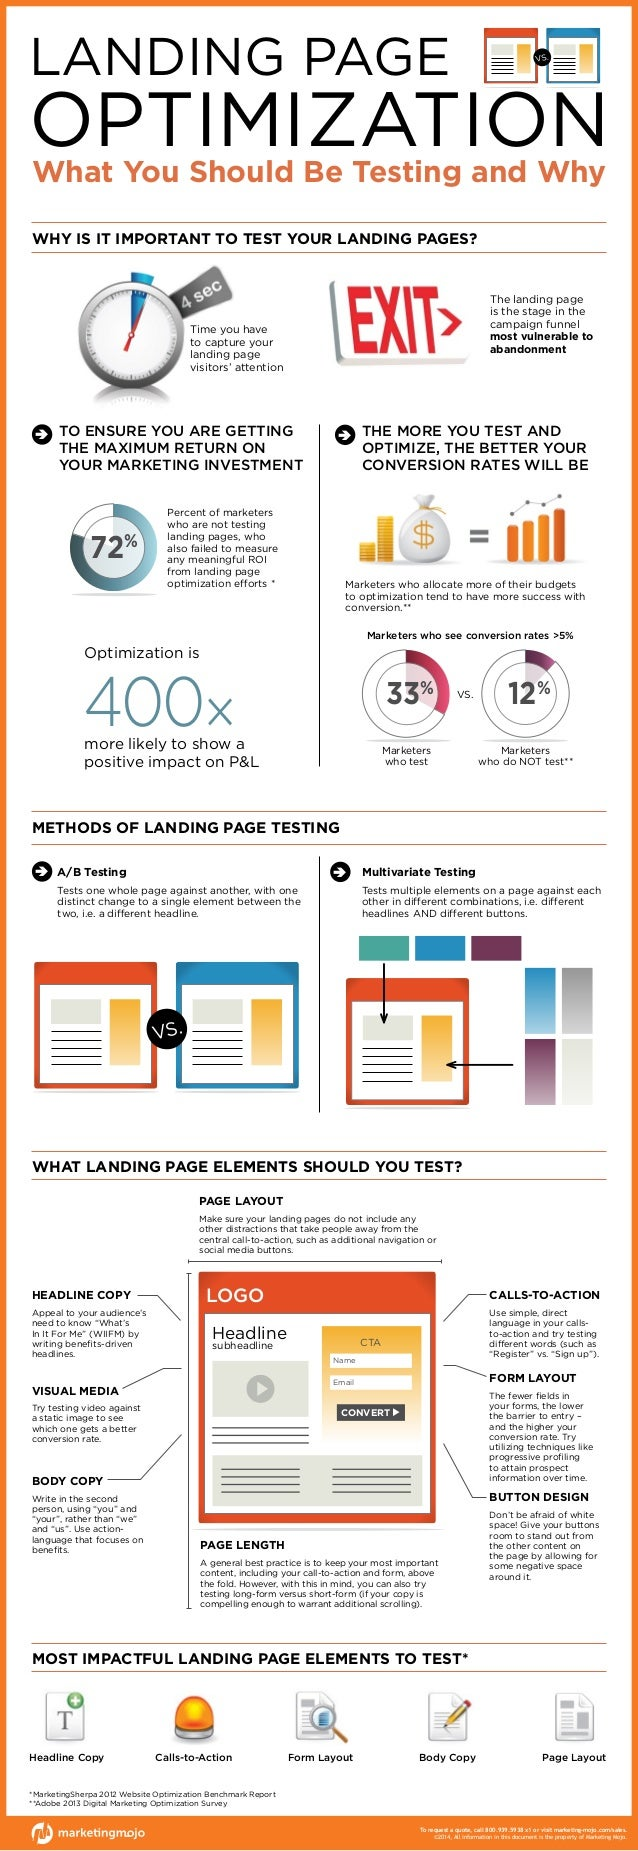 INFOGRAPHIC: Landing Page Optimization